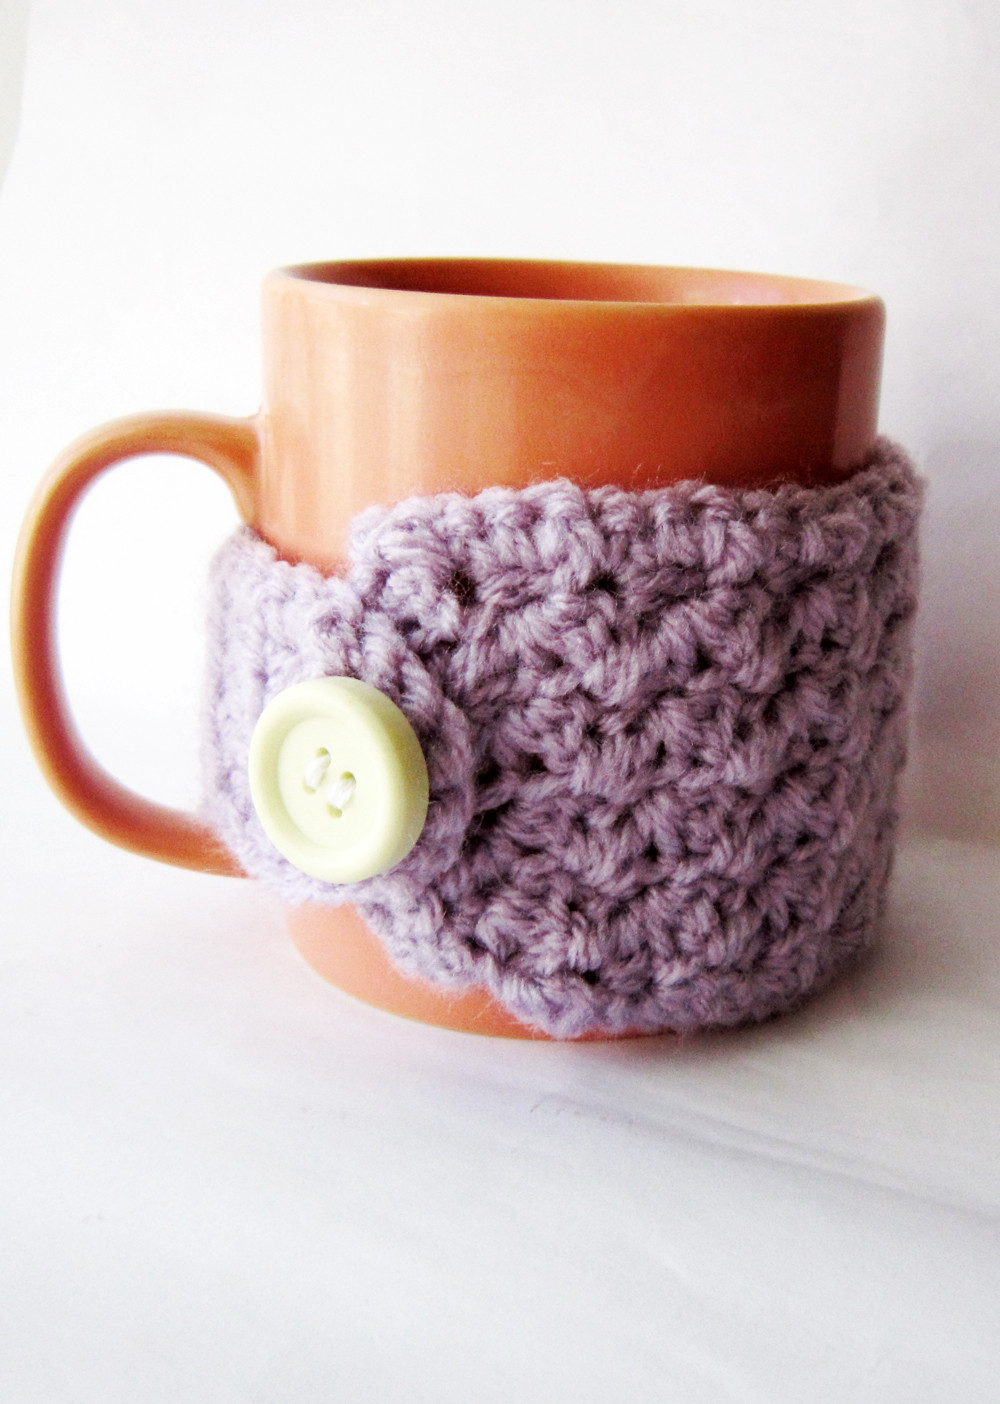 Crochet Coffee Cup Cozy Inspirational Easy Crochet Mug Cozy Free Pattern Akamatra Of Crochet Coffee Cup Cozy New Crochet Tea Cozy Coffee Cup Sleeve Coffee Sleeve Mug Cozy